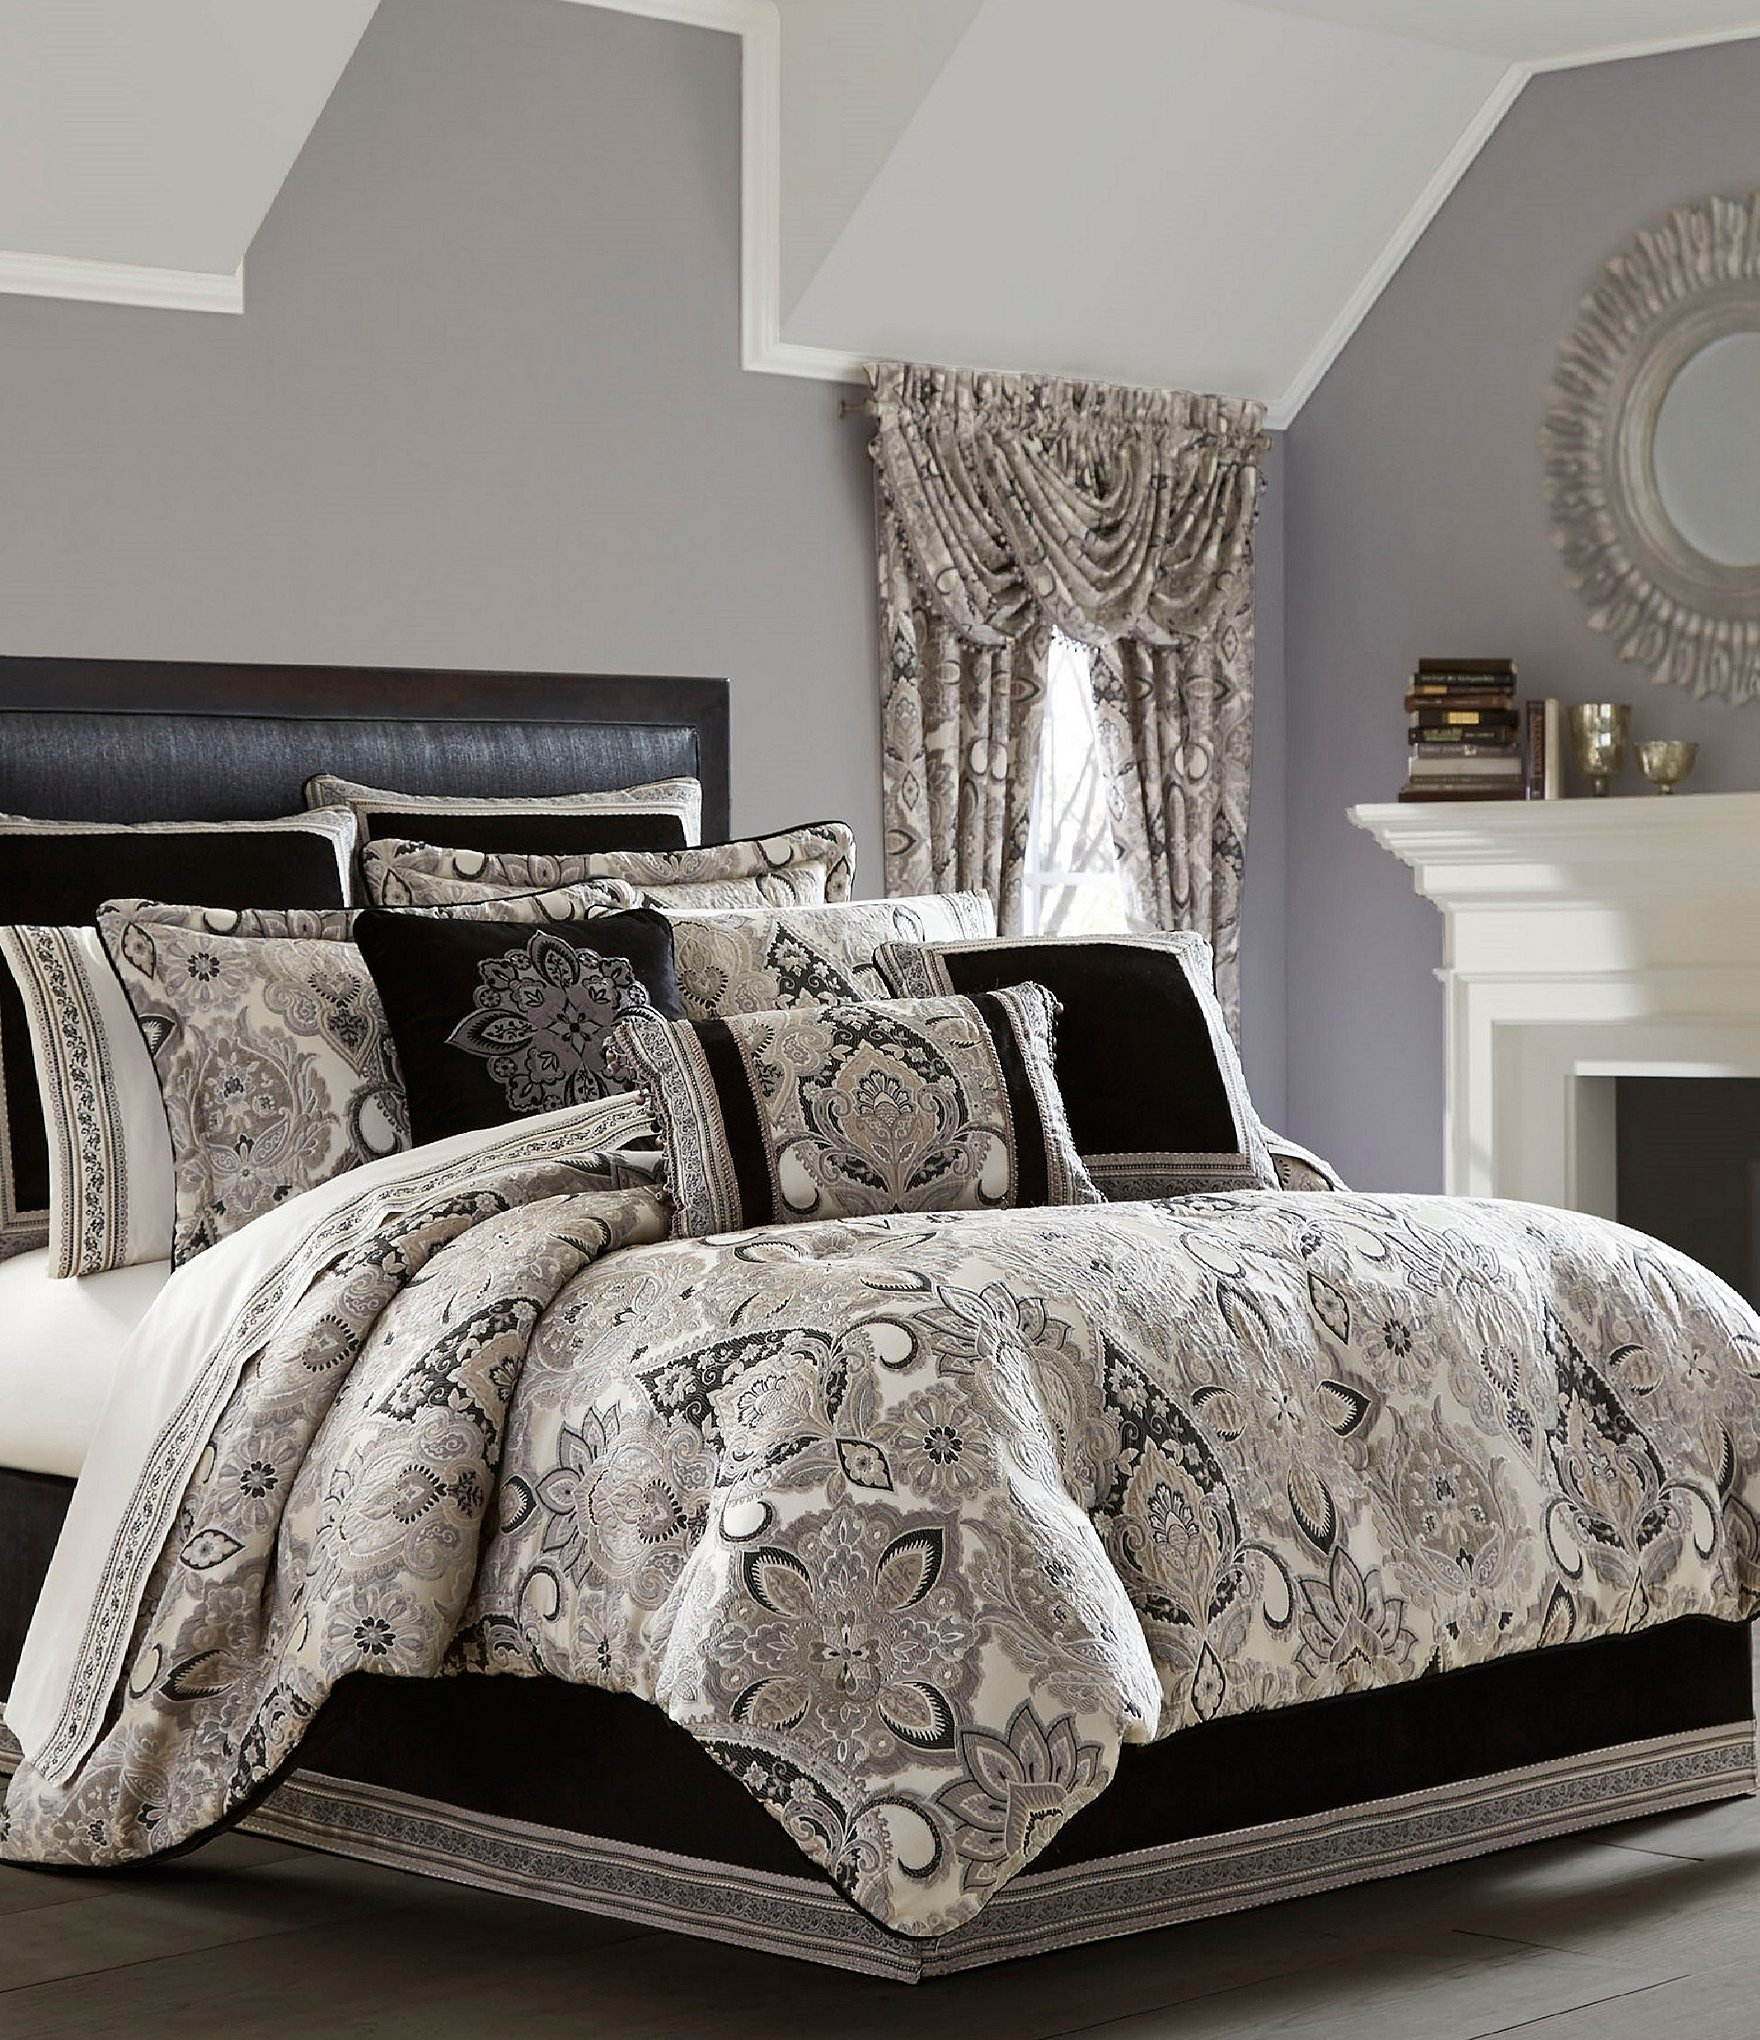 Queen new york luxembourg comforter set in antique silver bed - Queen New York Luxembourg Comforter Set In Antique Silver Bed 18